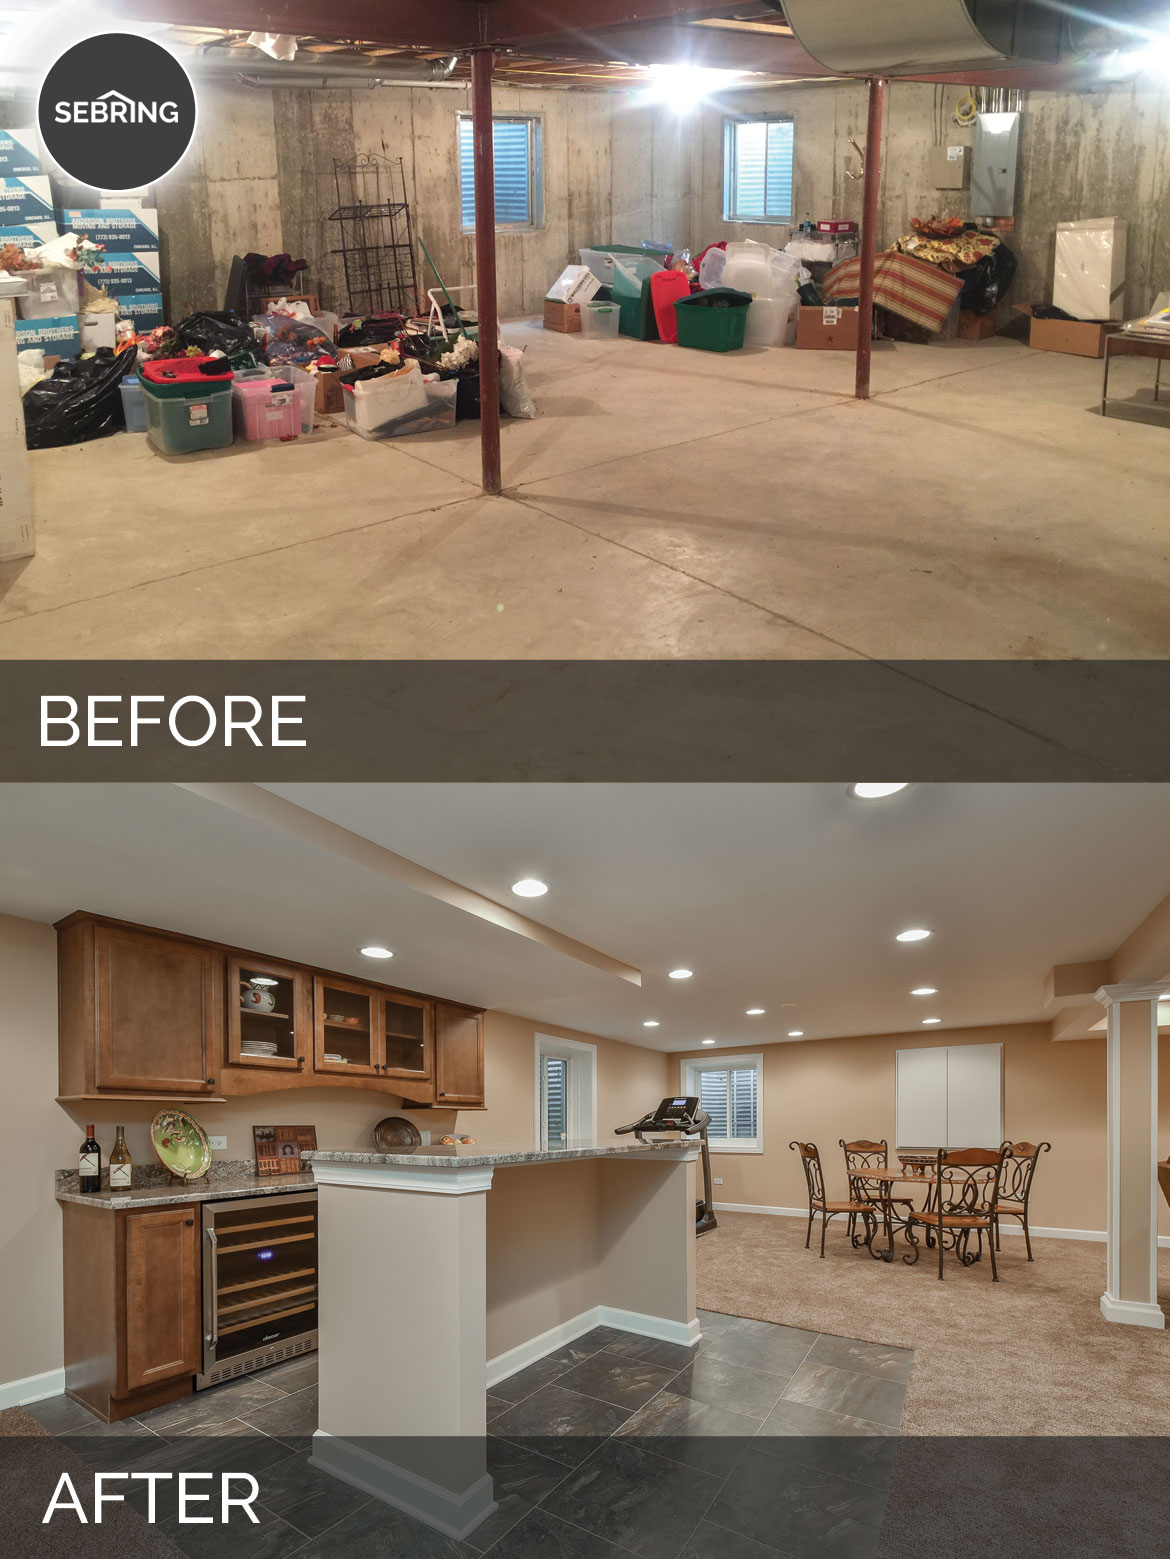 Carole S Basement Before After Pictures Home Remodeling Contractors Sebring Design Build